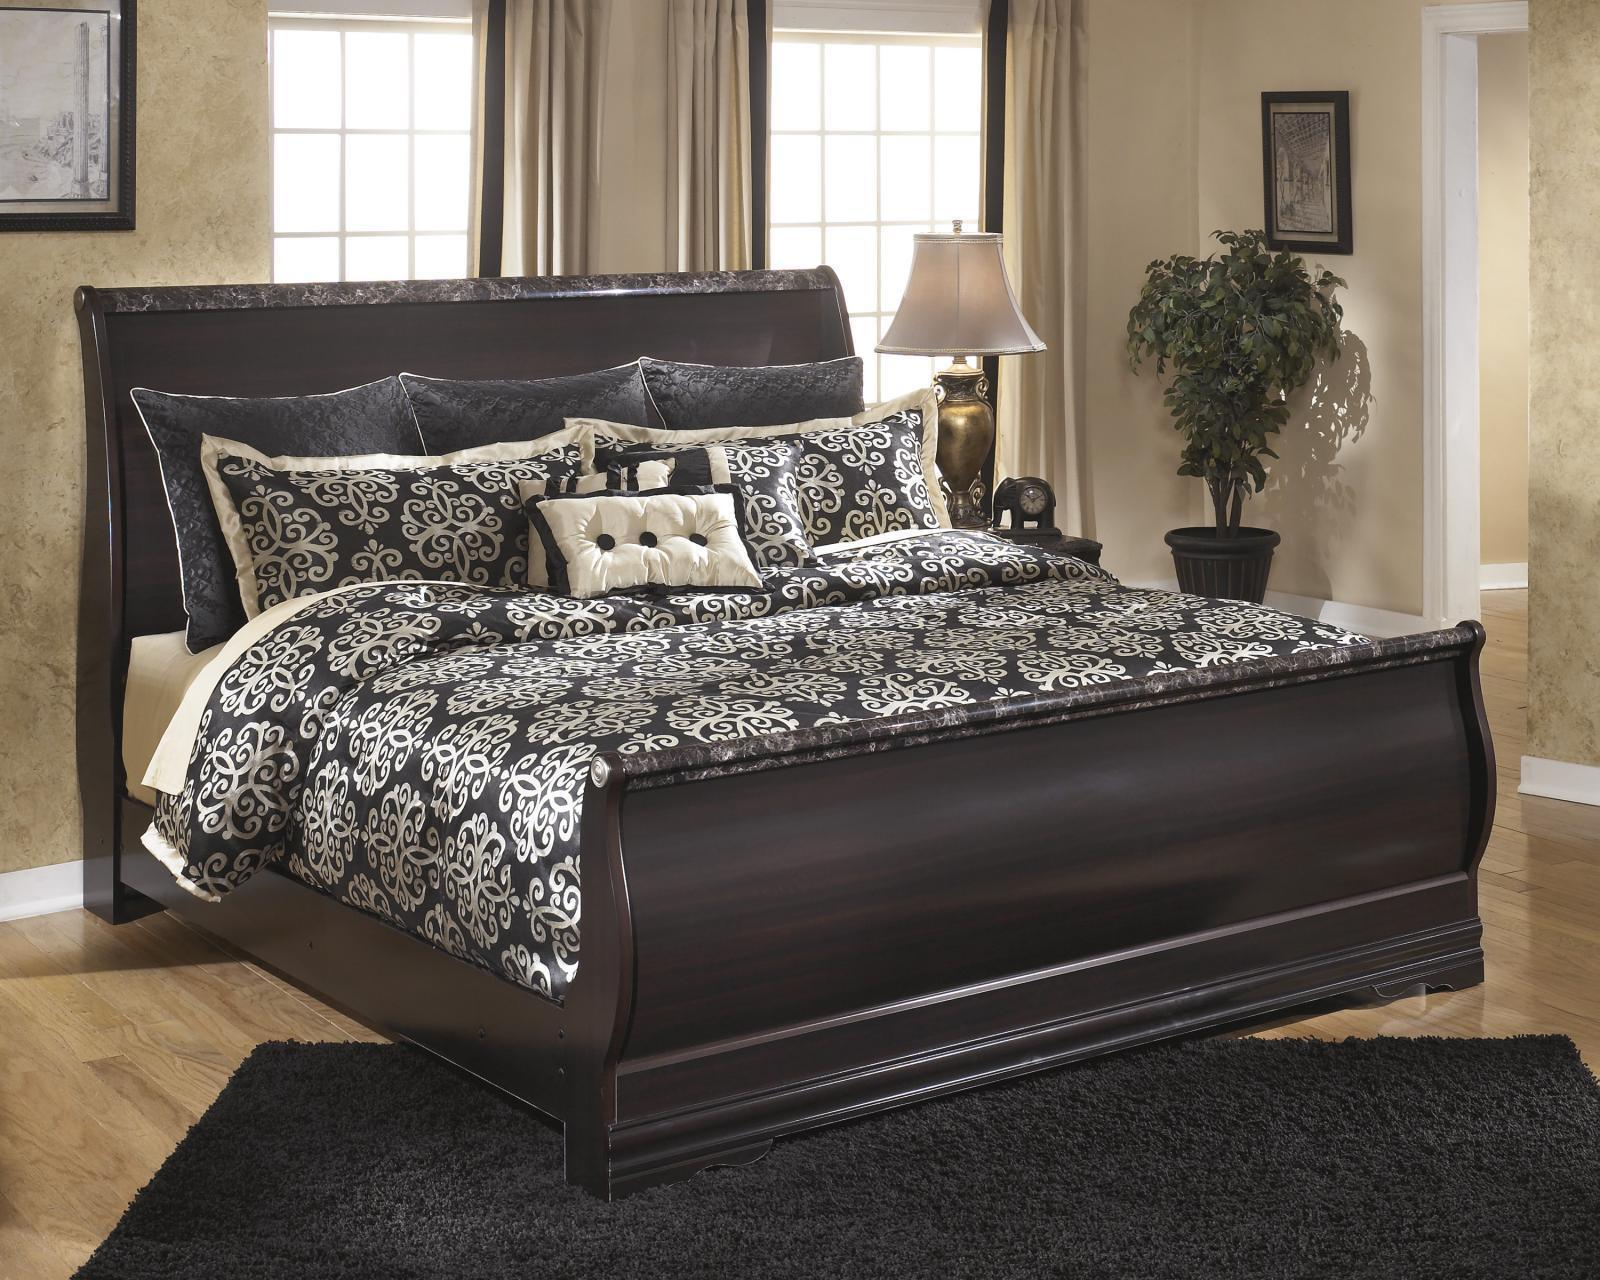 Ashley esmarelda b179 king size sleigh bedroom set 2 night - King size sleigh bed bedroom set ...